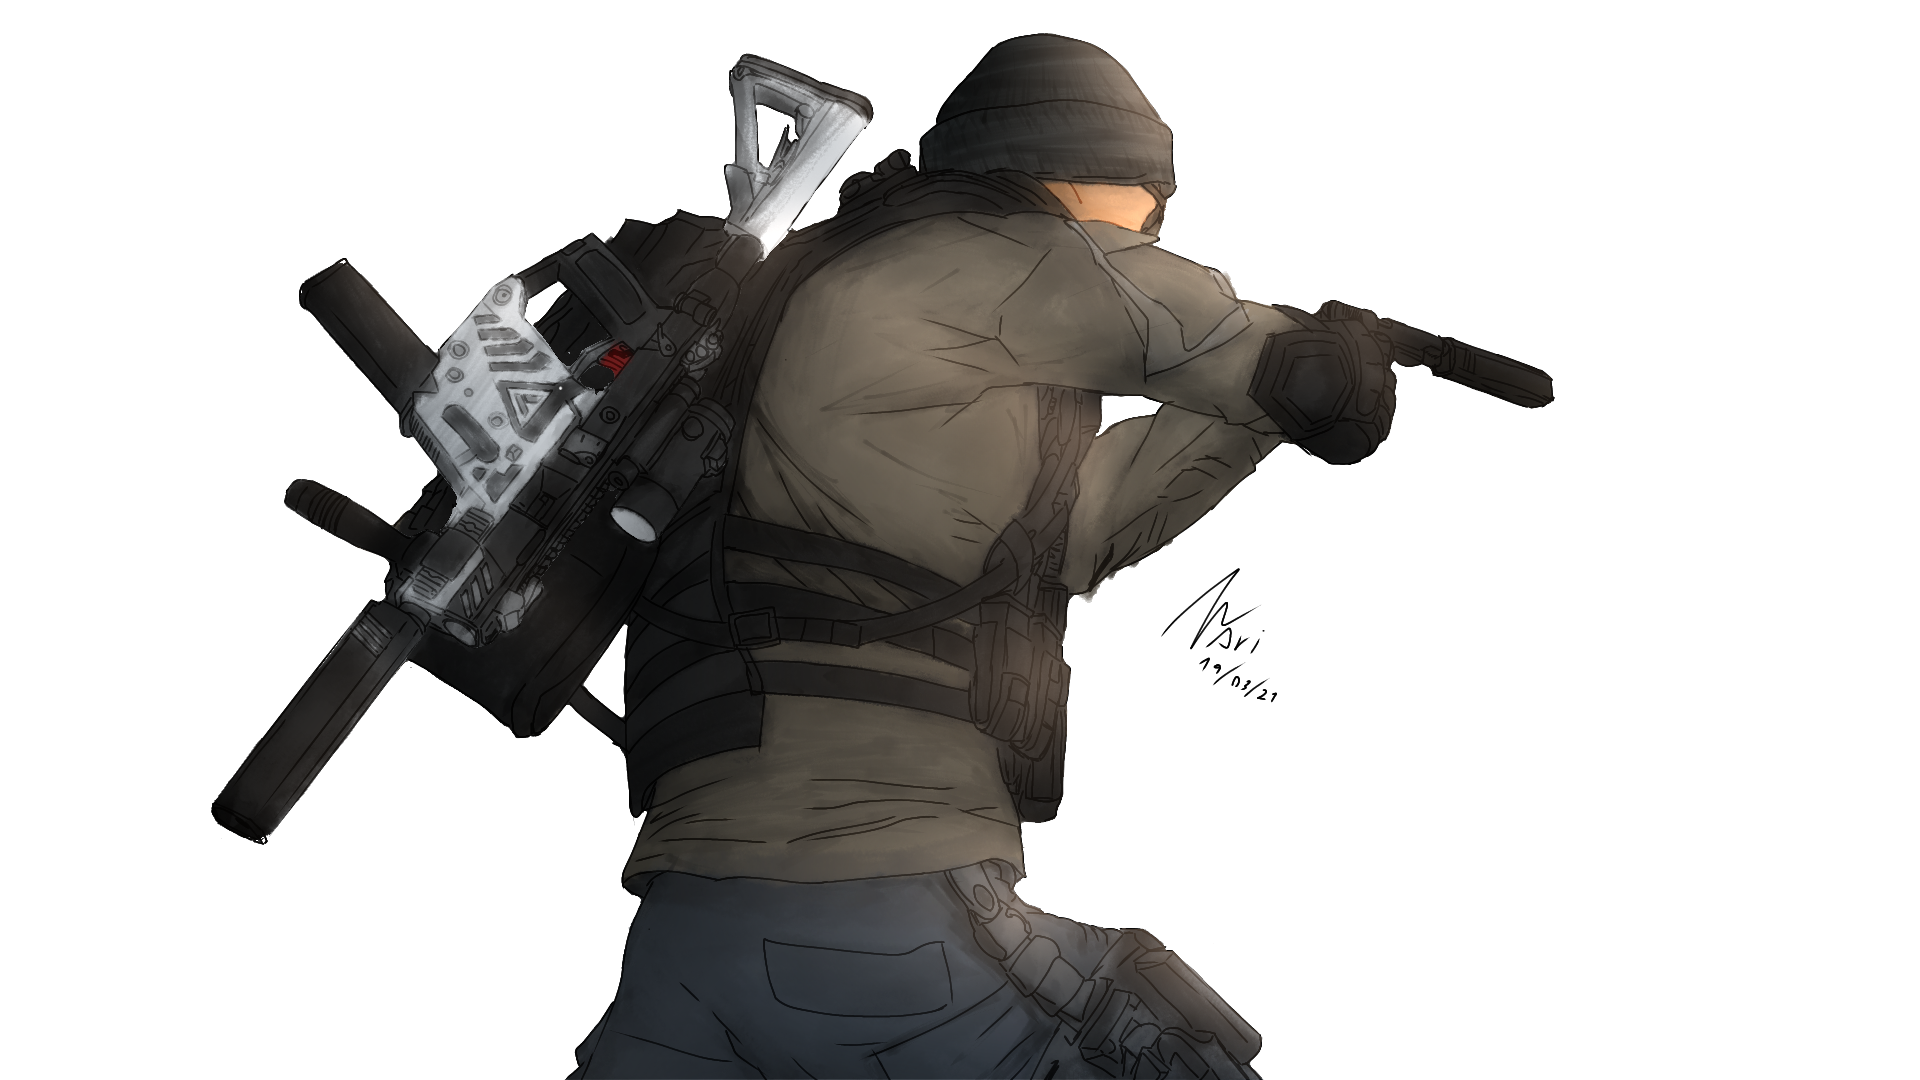 Some operator I guess